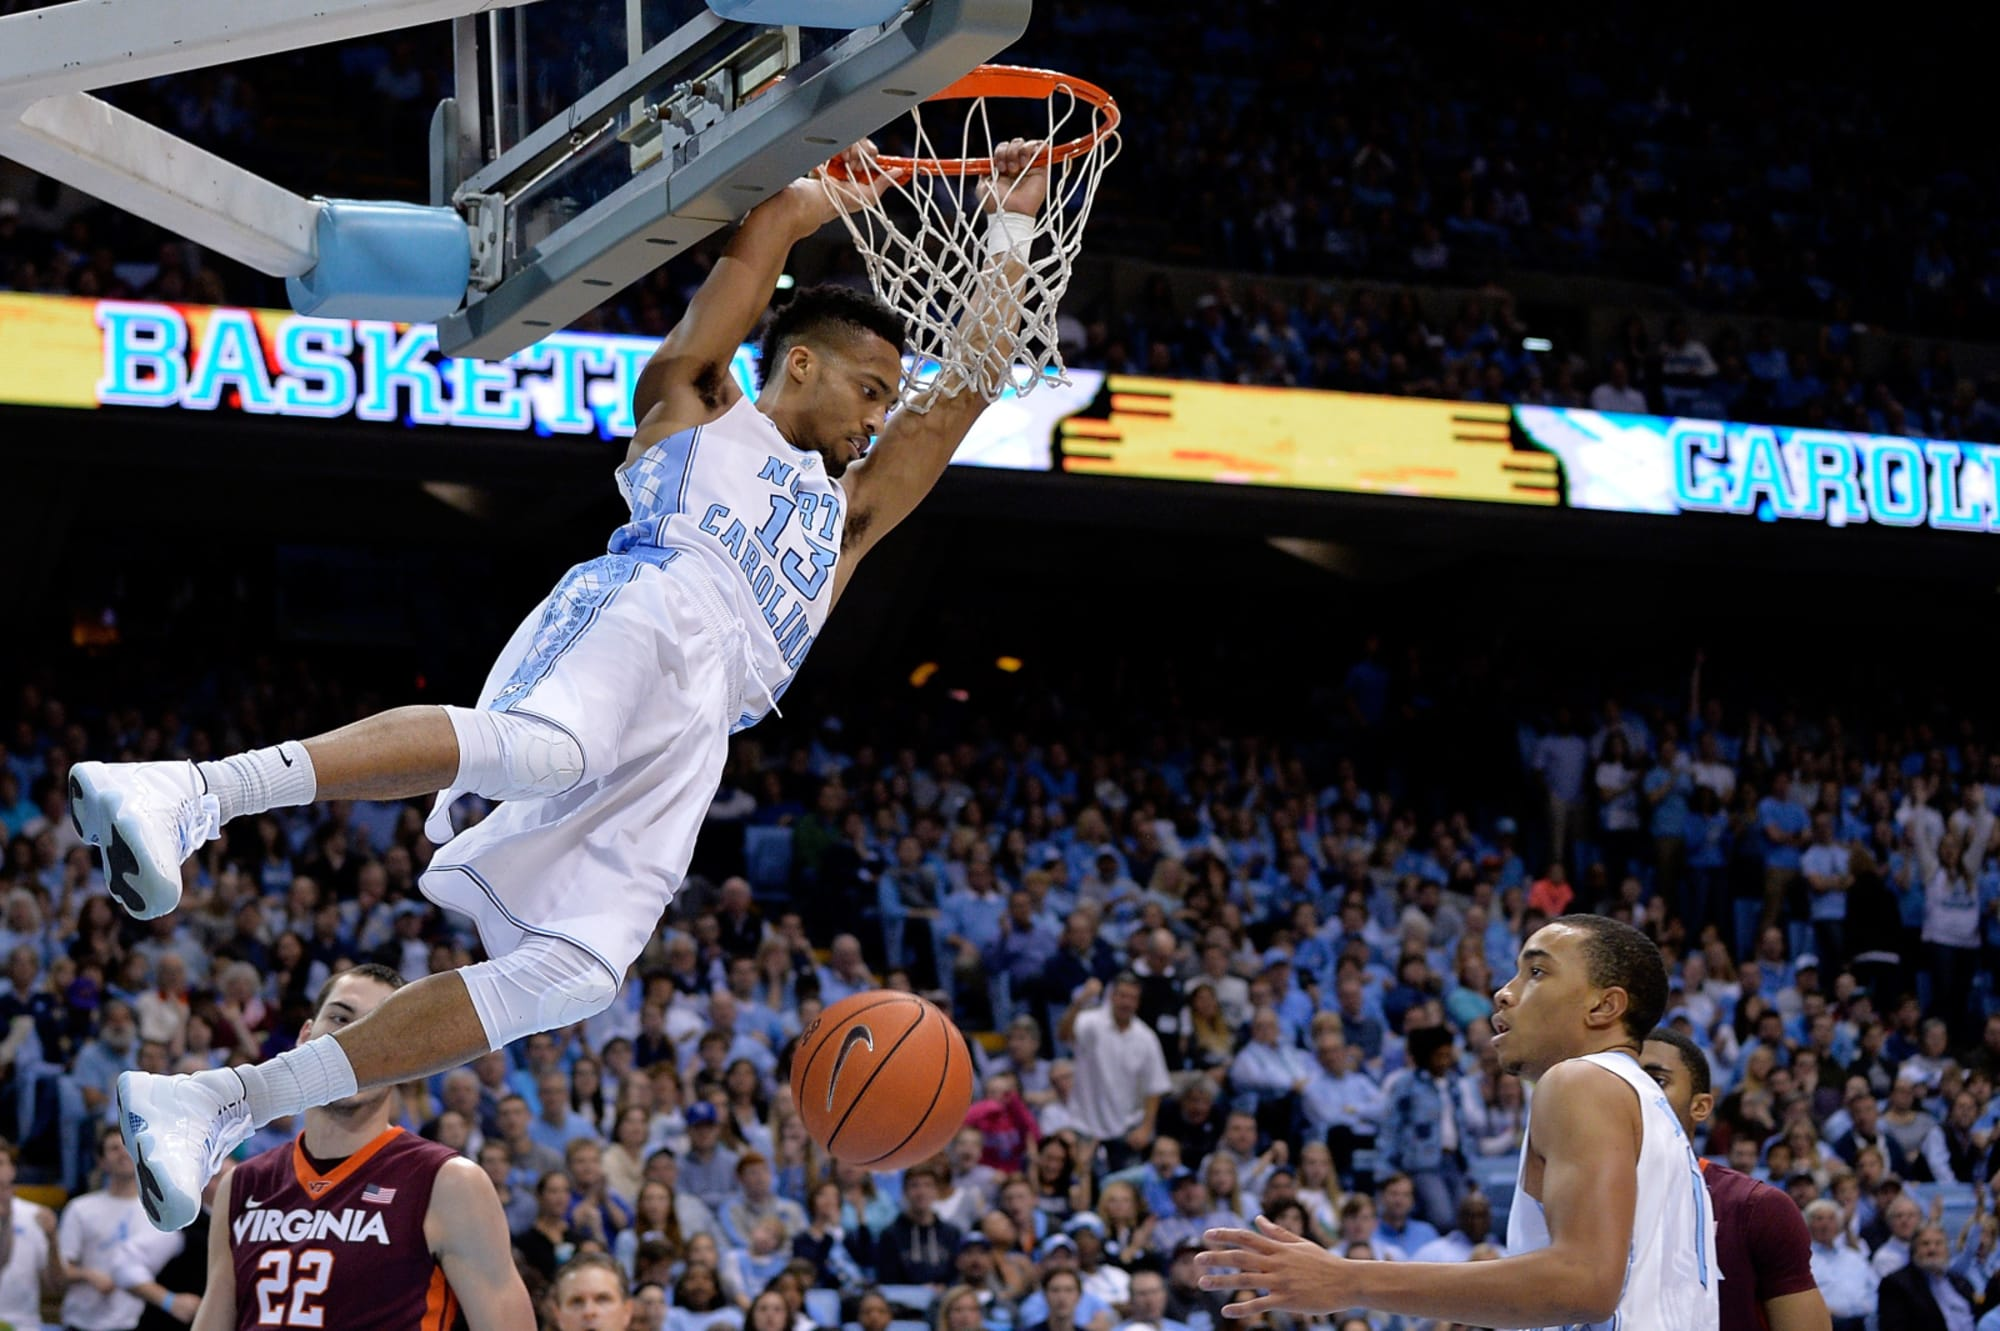 J.P. Tokoto to play in 2021 TBT